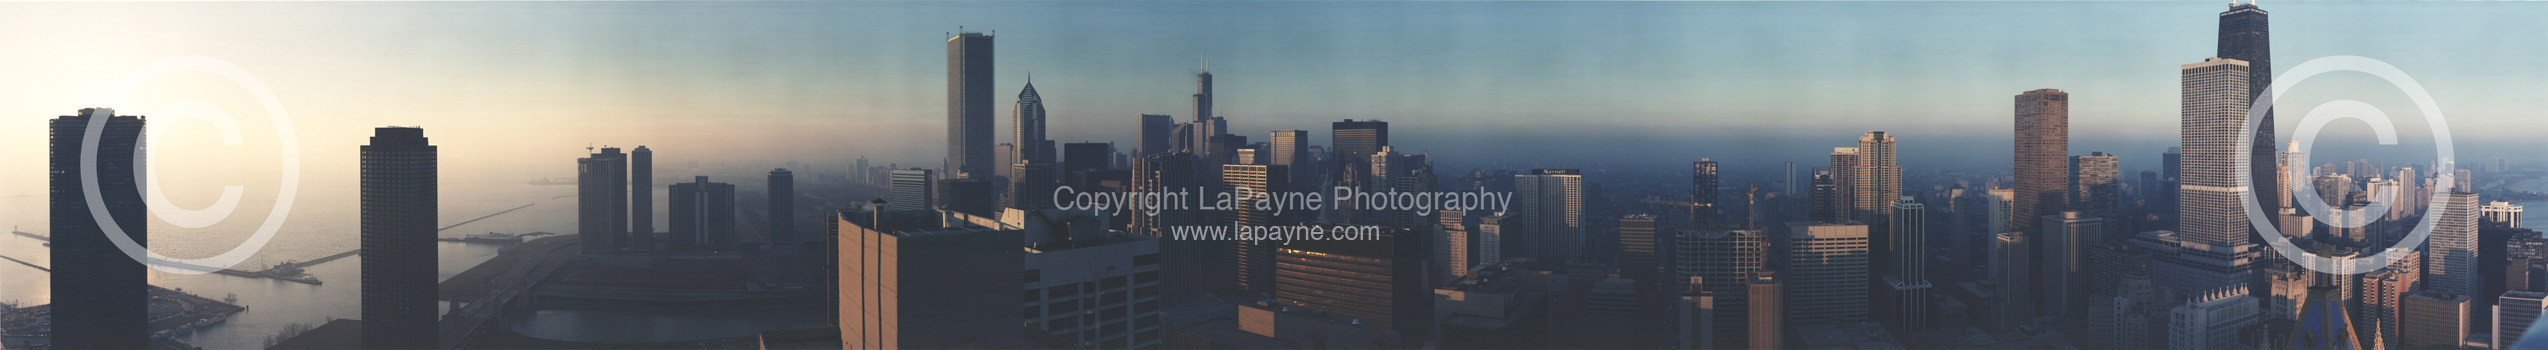 Chicago Skyline Sunrise 1991